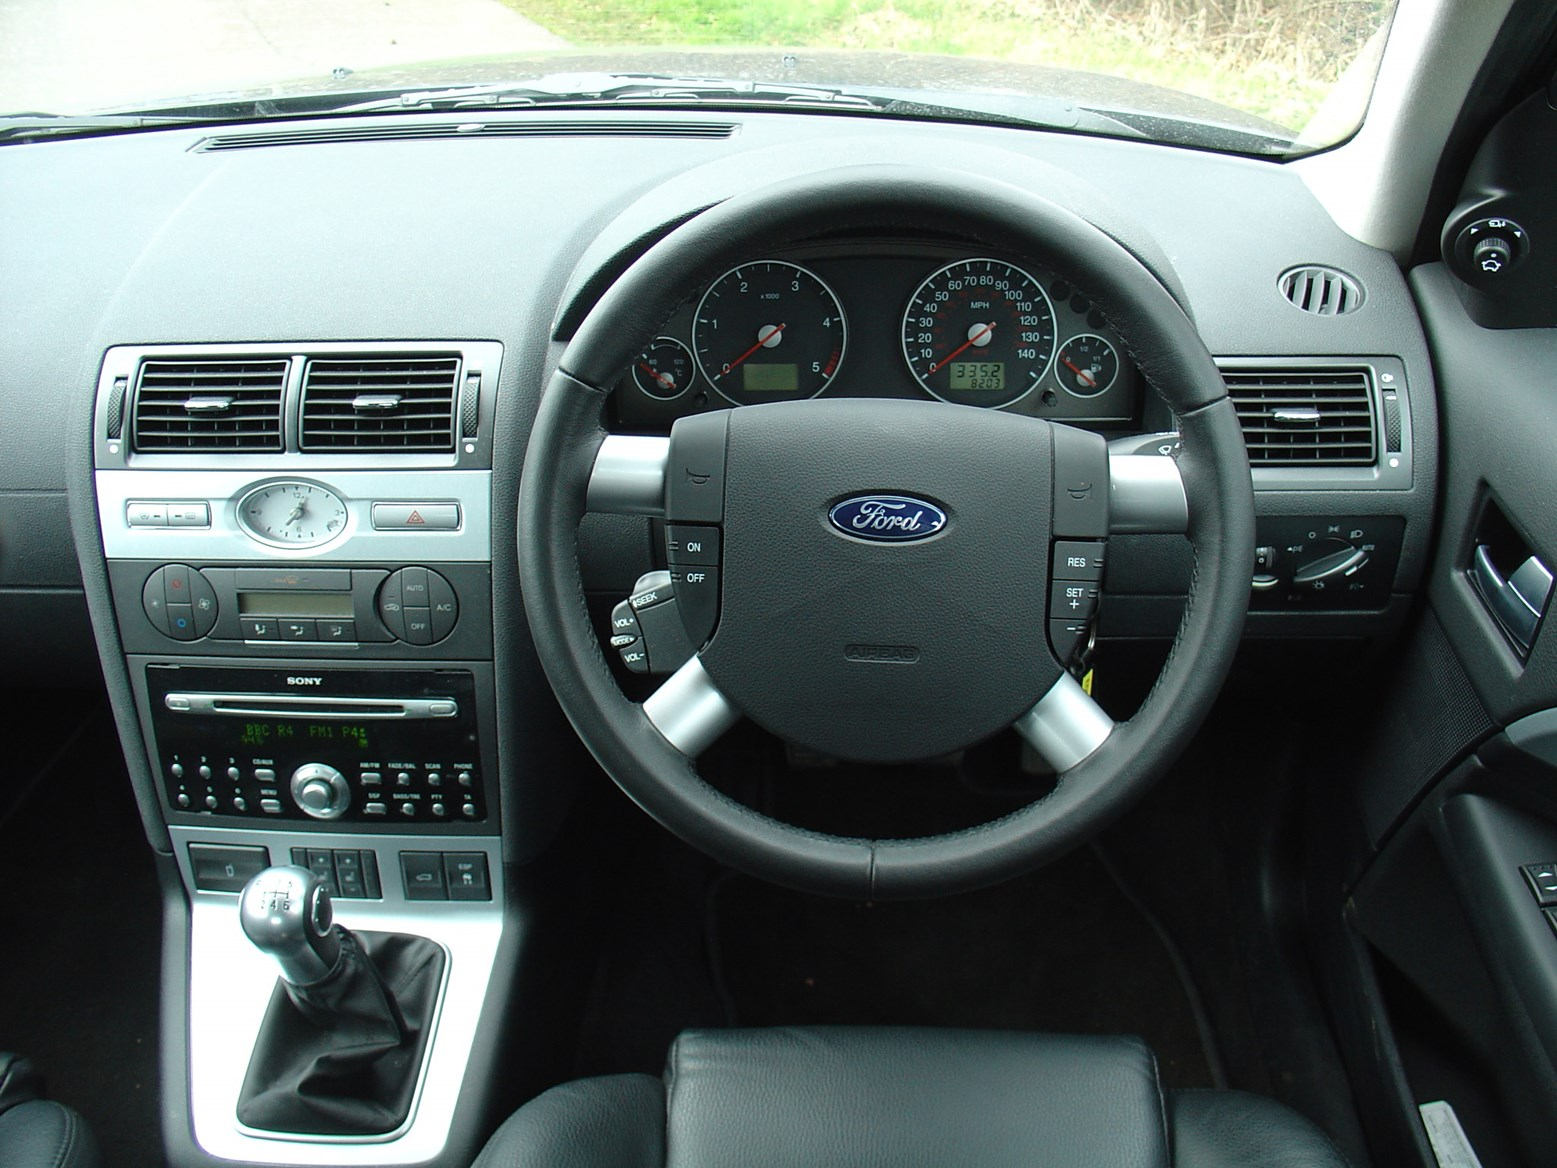 Ford mondeo hatchback 2000 2007 running costs parkers - Ford mondeo interior ...